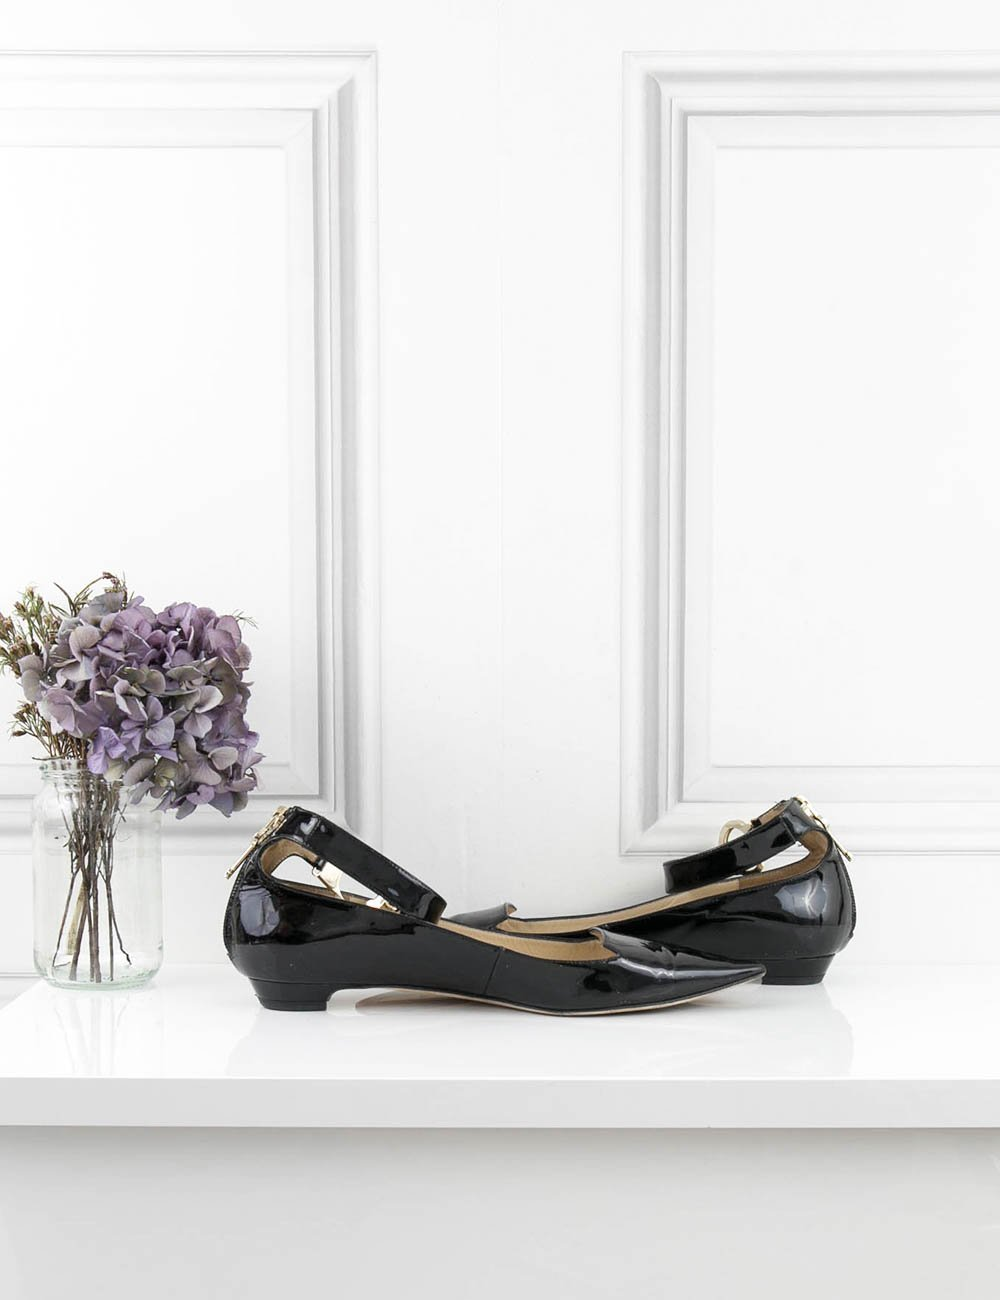 JIMMY CHOO SHOES Devise handcuff patented flats